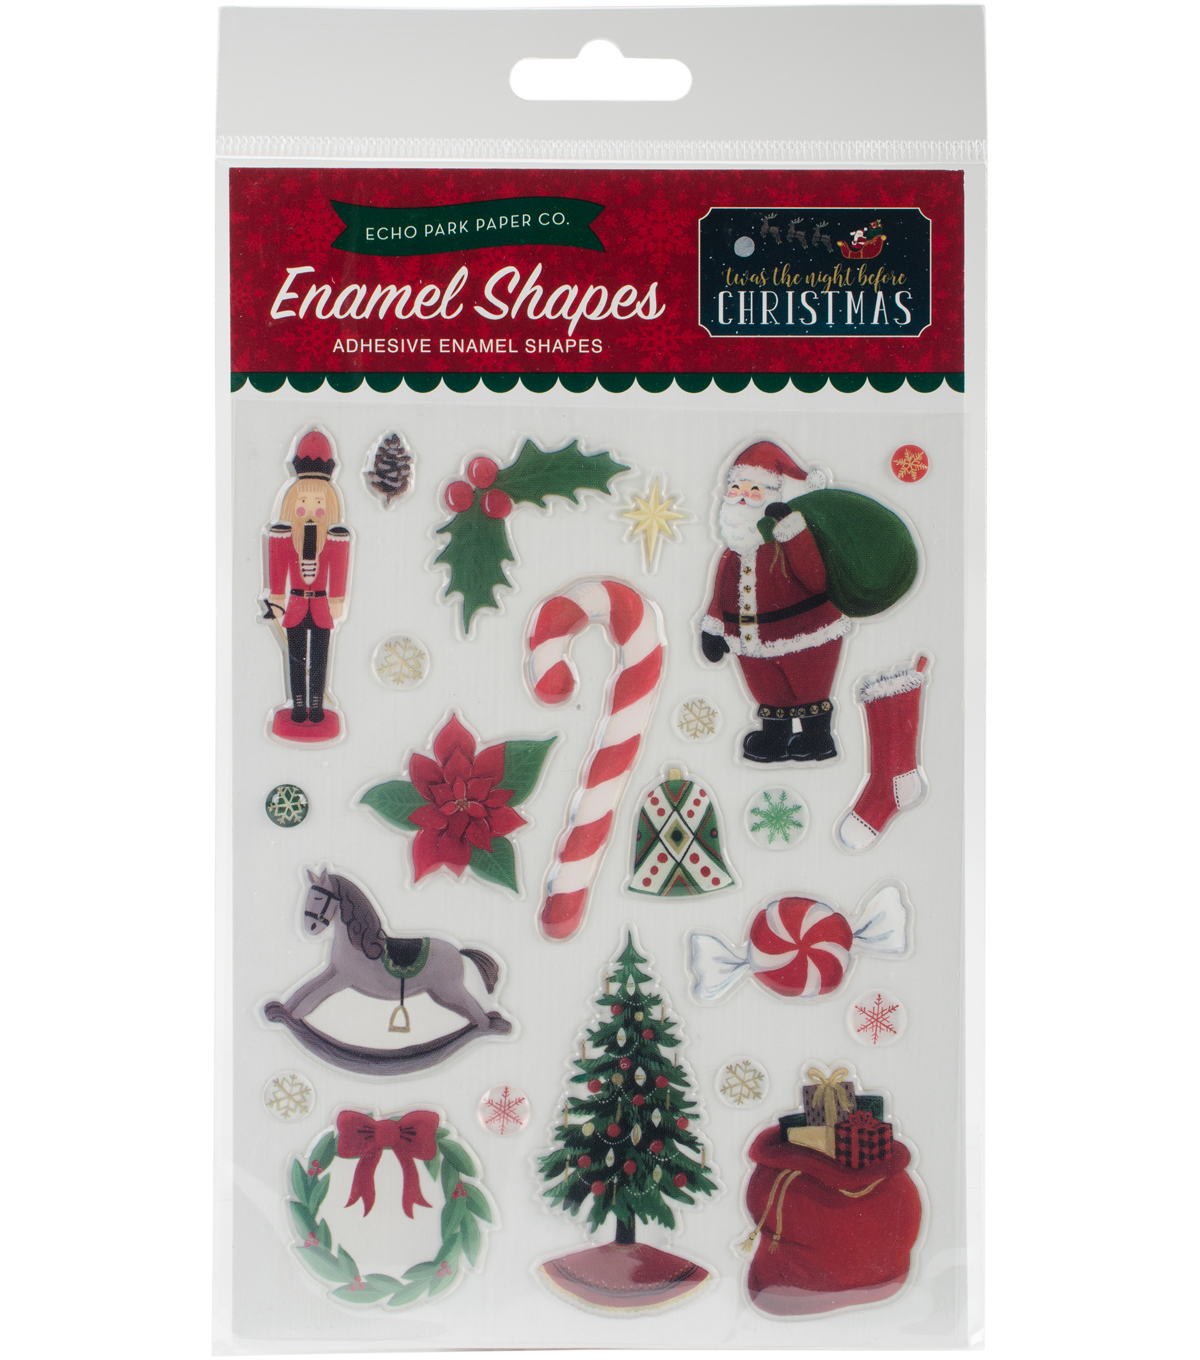 Echo Park Paper Company Twas the Night Before Christmas Enamel Shapes